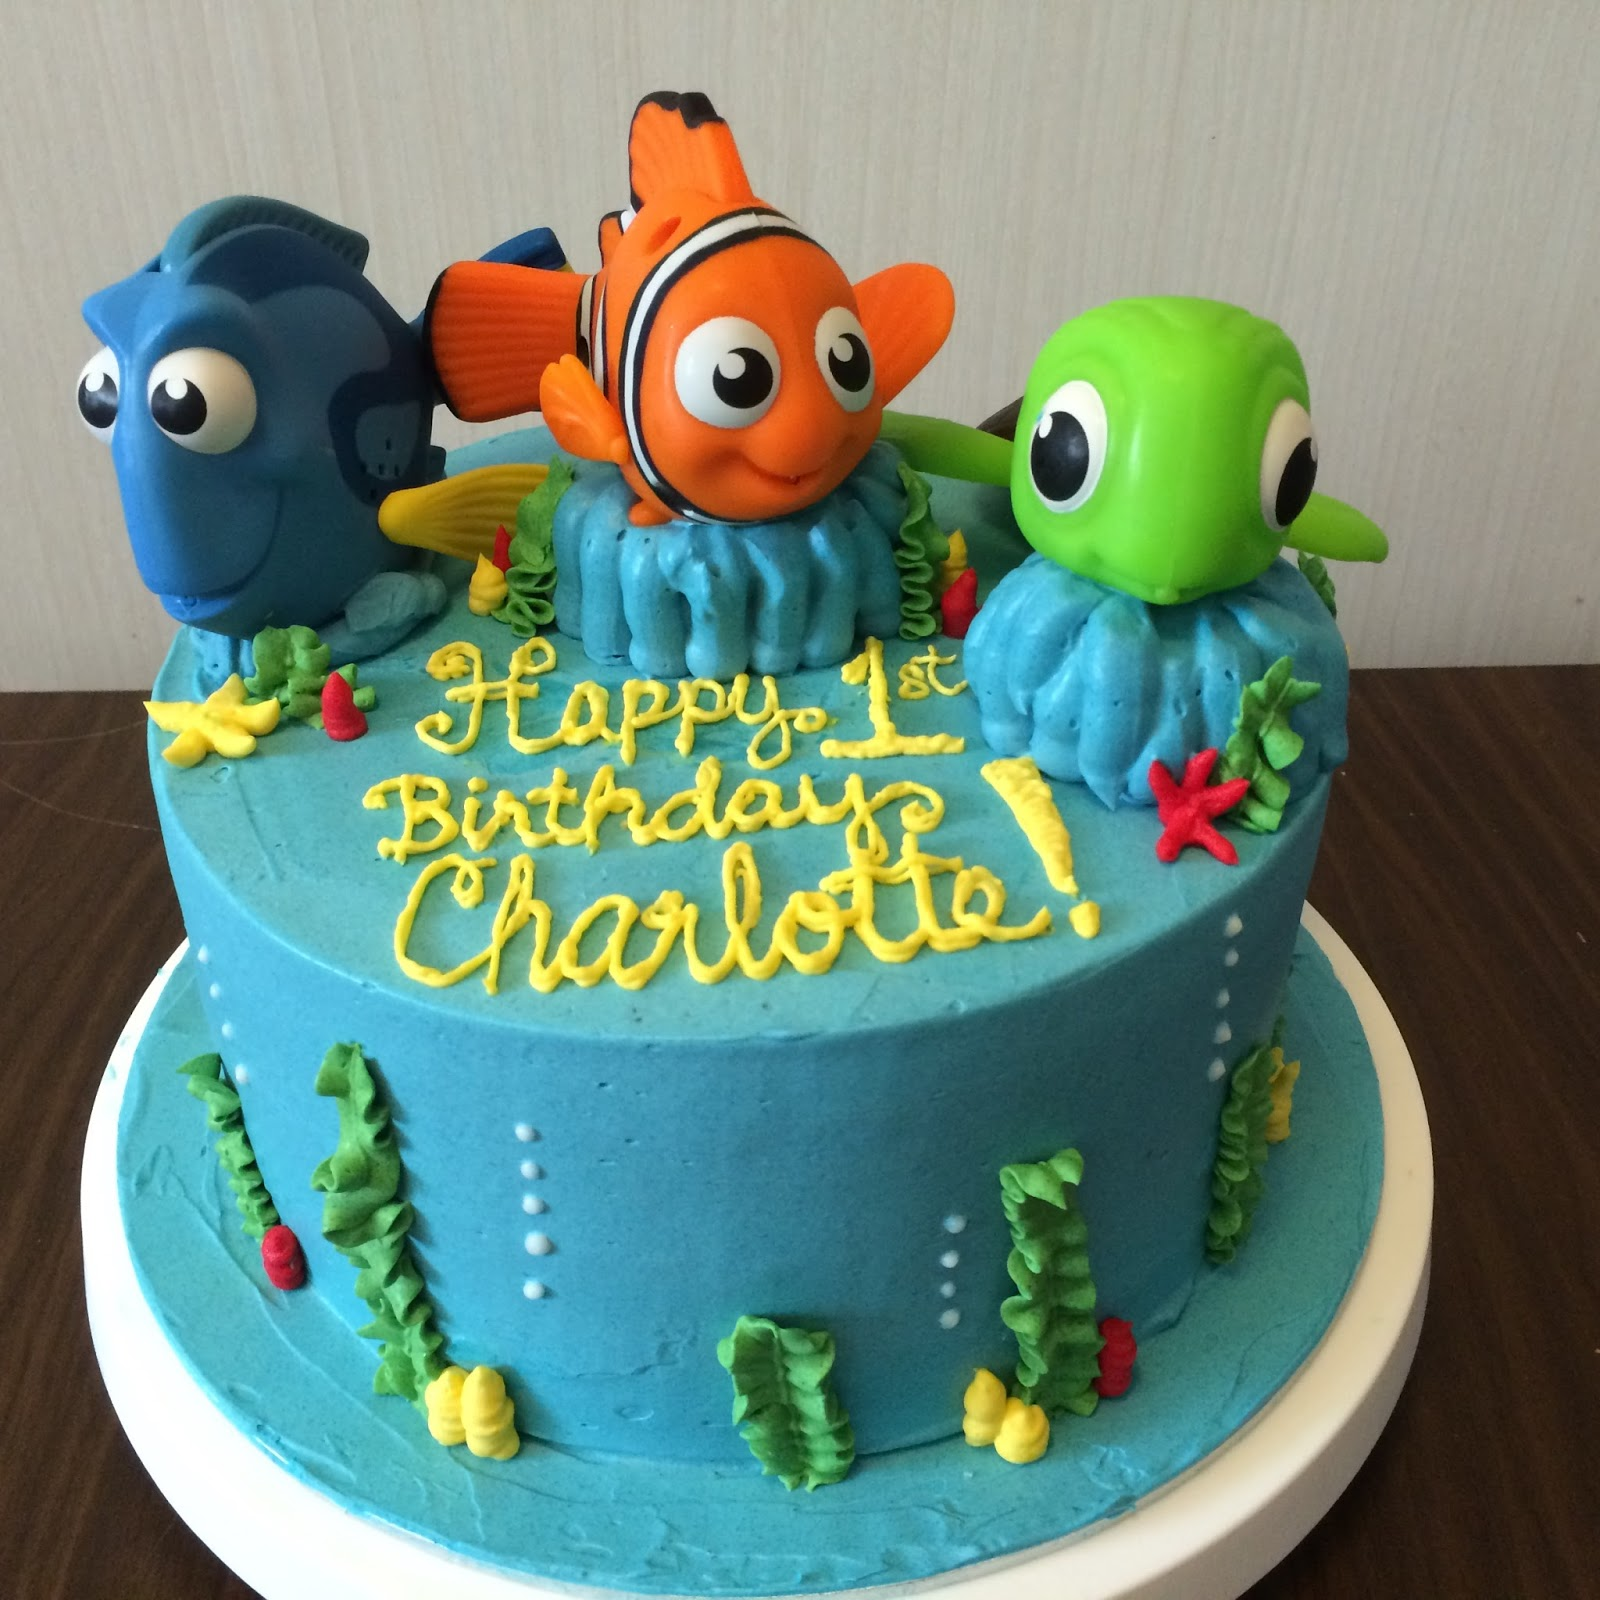 Cake Design Nemo : 1000+ images about Cake and Cupcake Decorating Ideas on ...